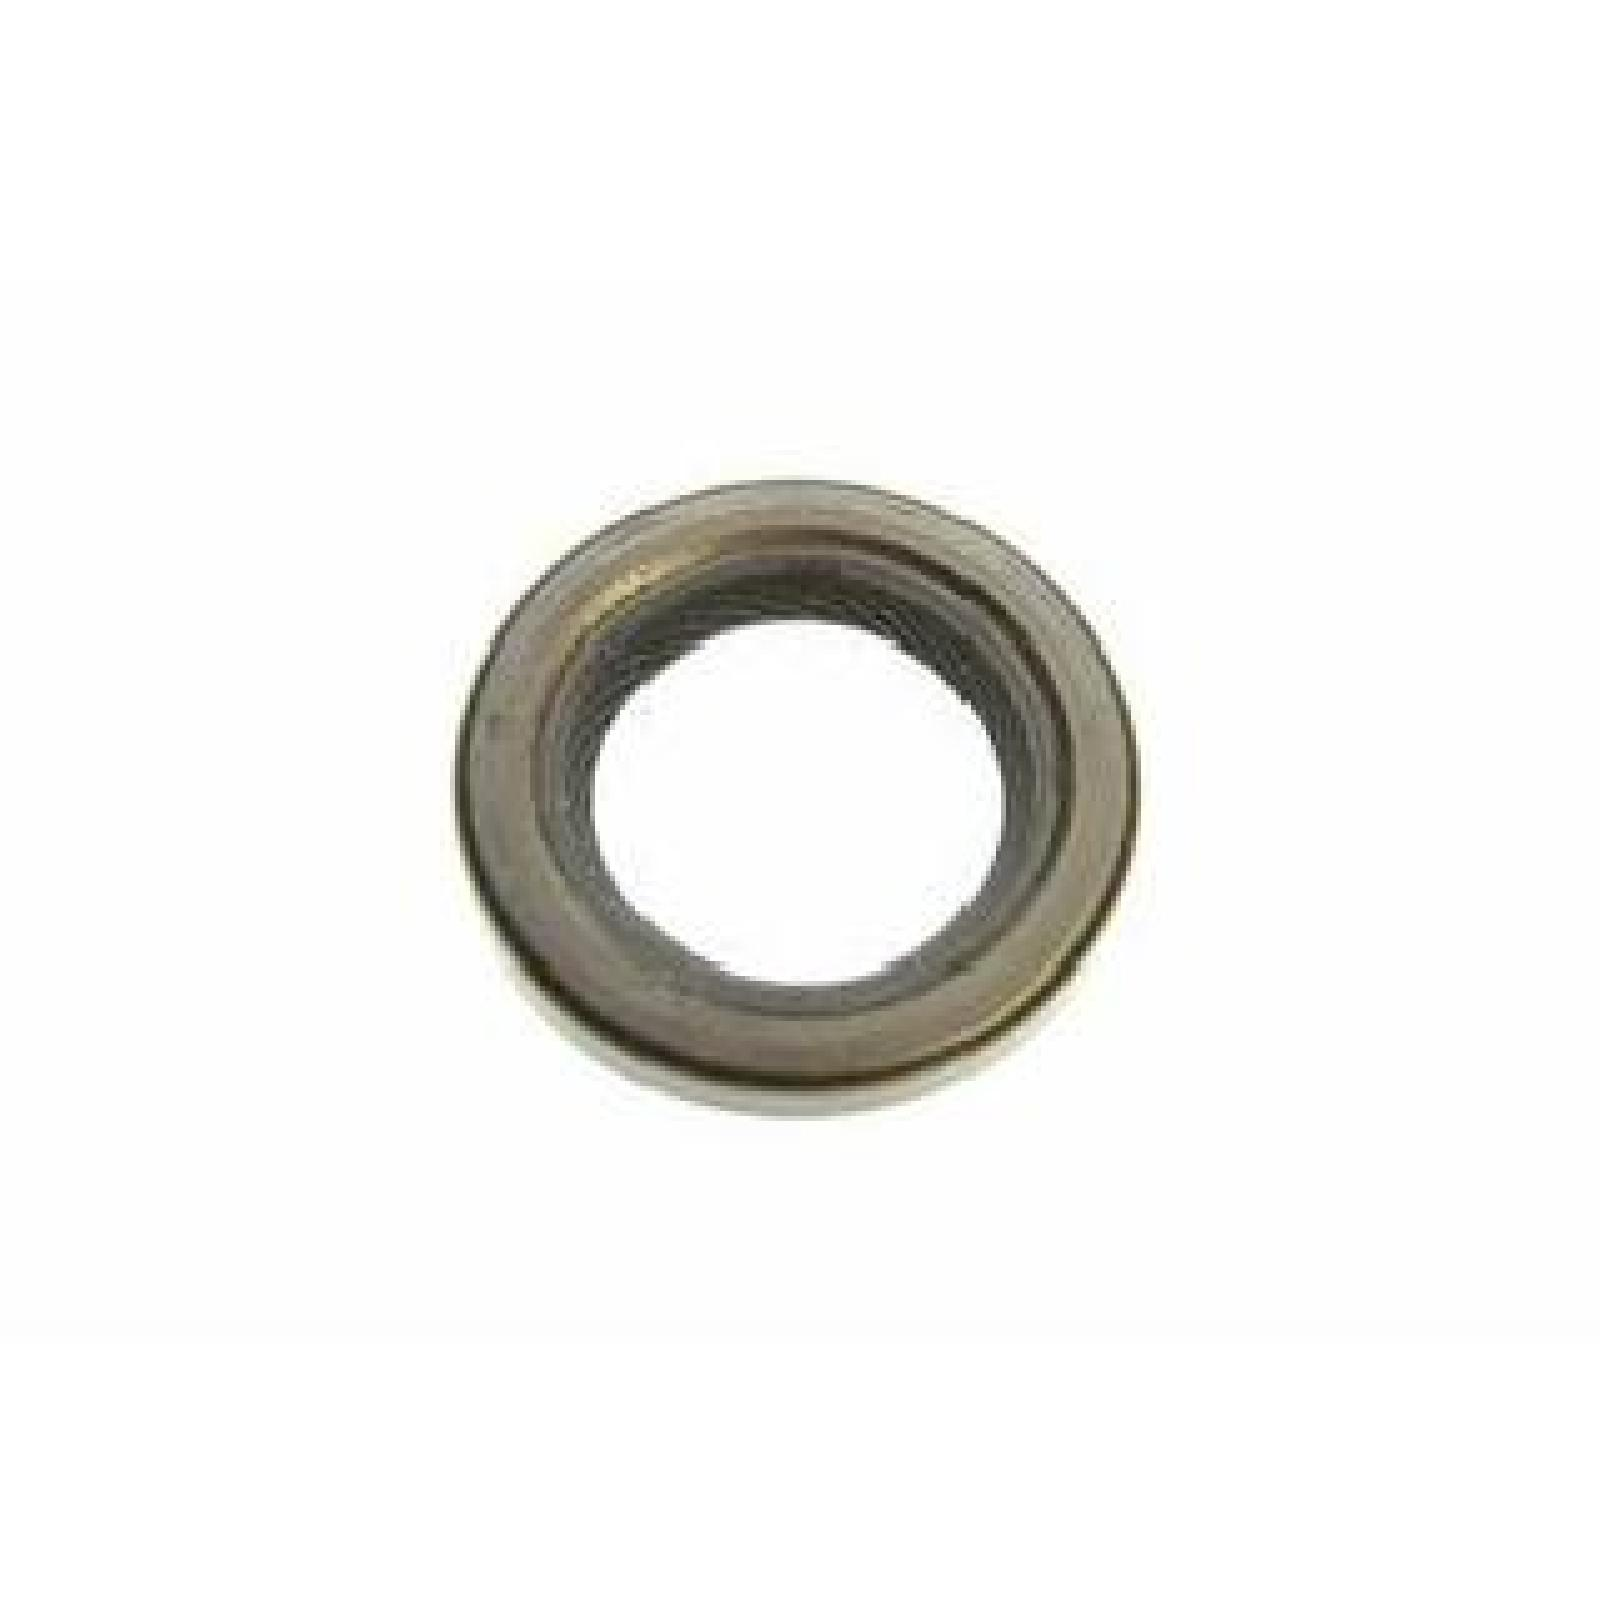 OIL SEAL part# 32600 by Tecumseh